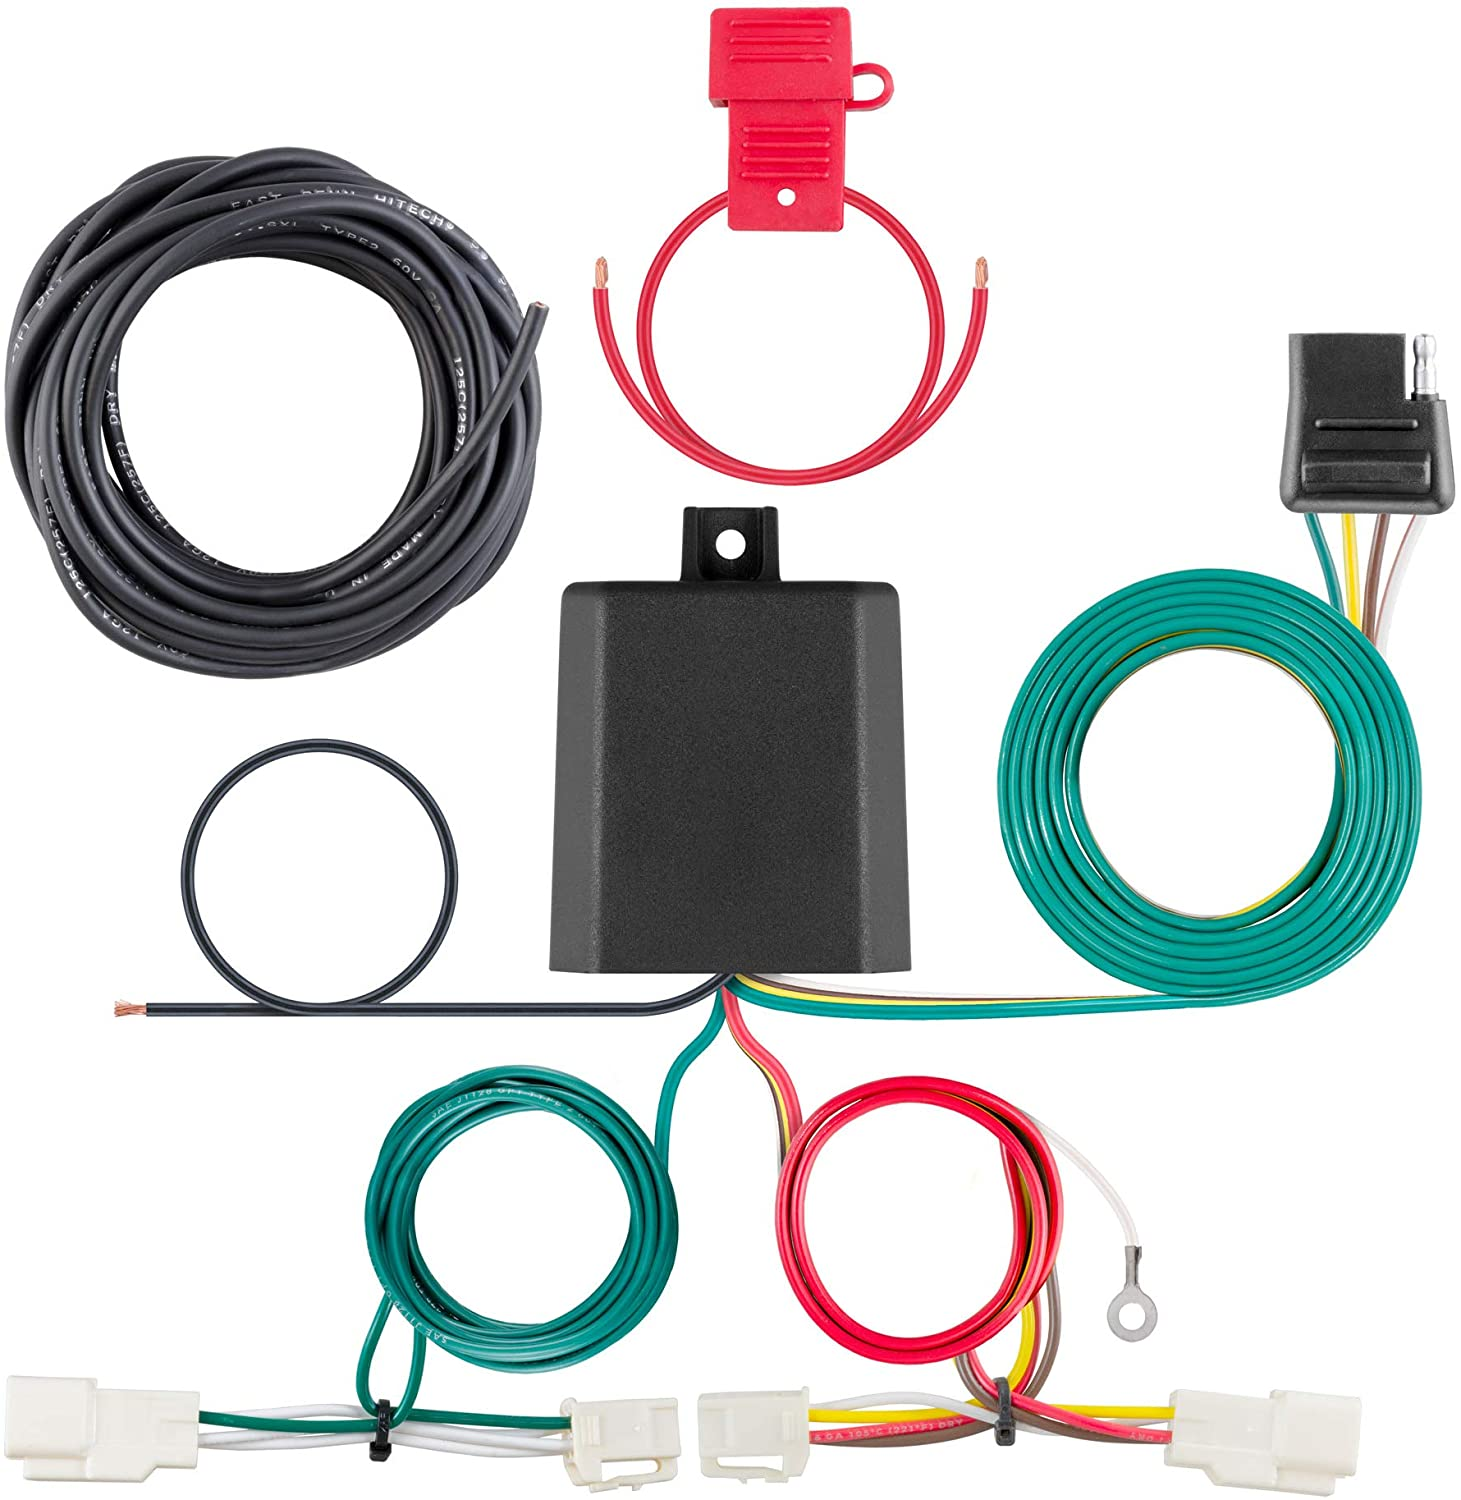 CURT 56350 Vehicle-Side Custom 4-Pin Trailer Wiring Harness, Fit